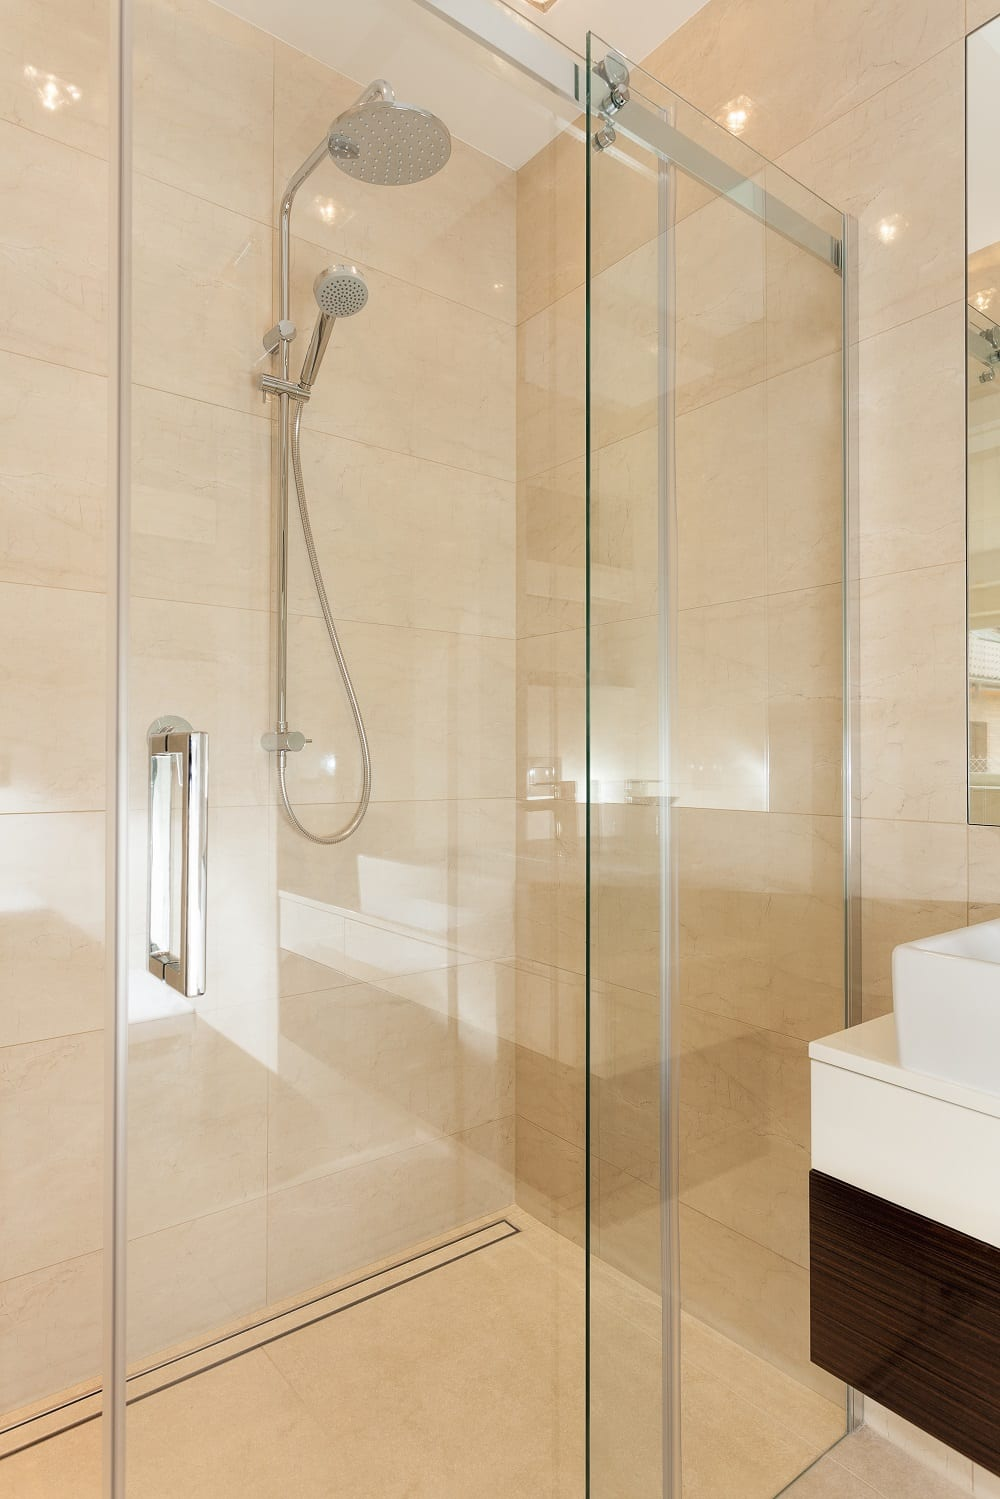 Small ensuite showing shower with door open.